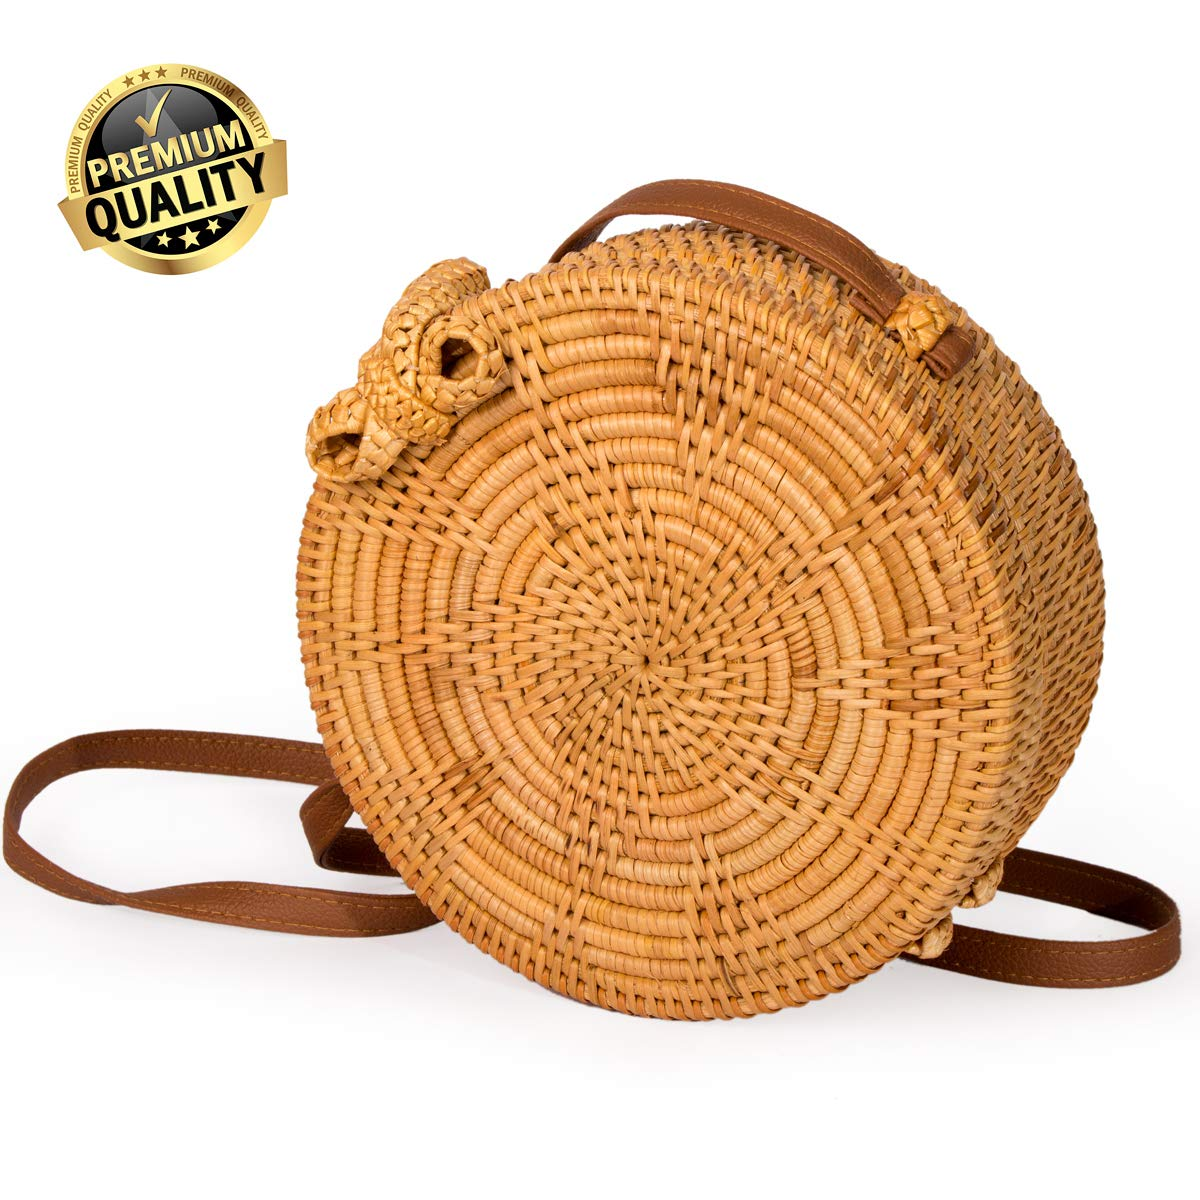 PREMIUM Women Rattan Bag Round Handwoven Rattan Crossbody Bags with Outstanding Star Decoration Leather Strap by Mallaca (Star)